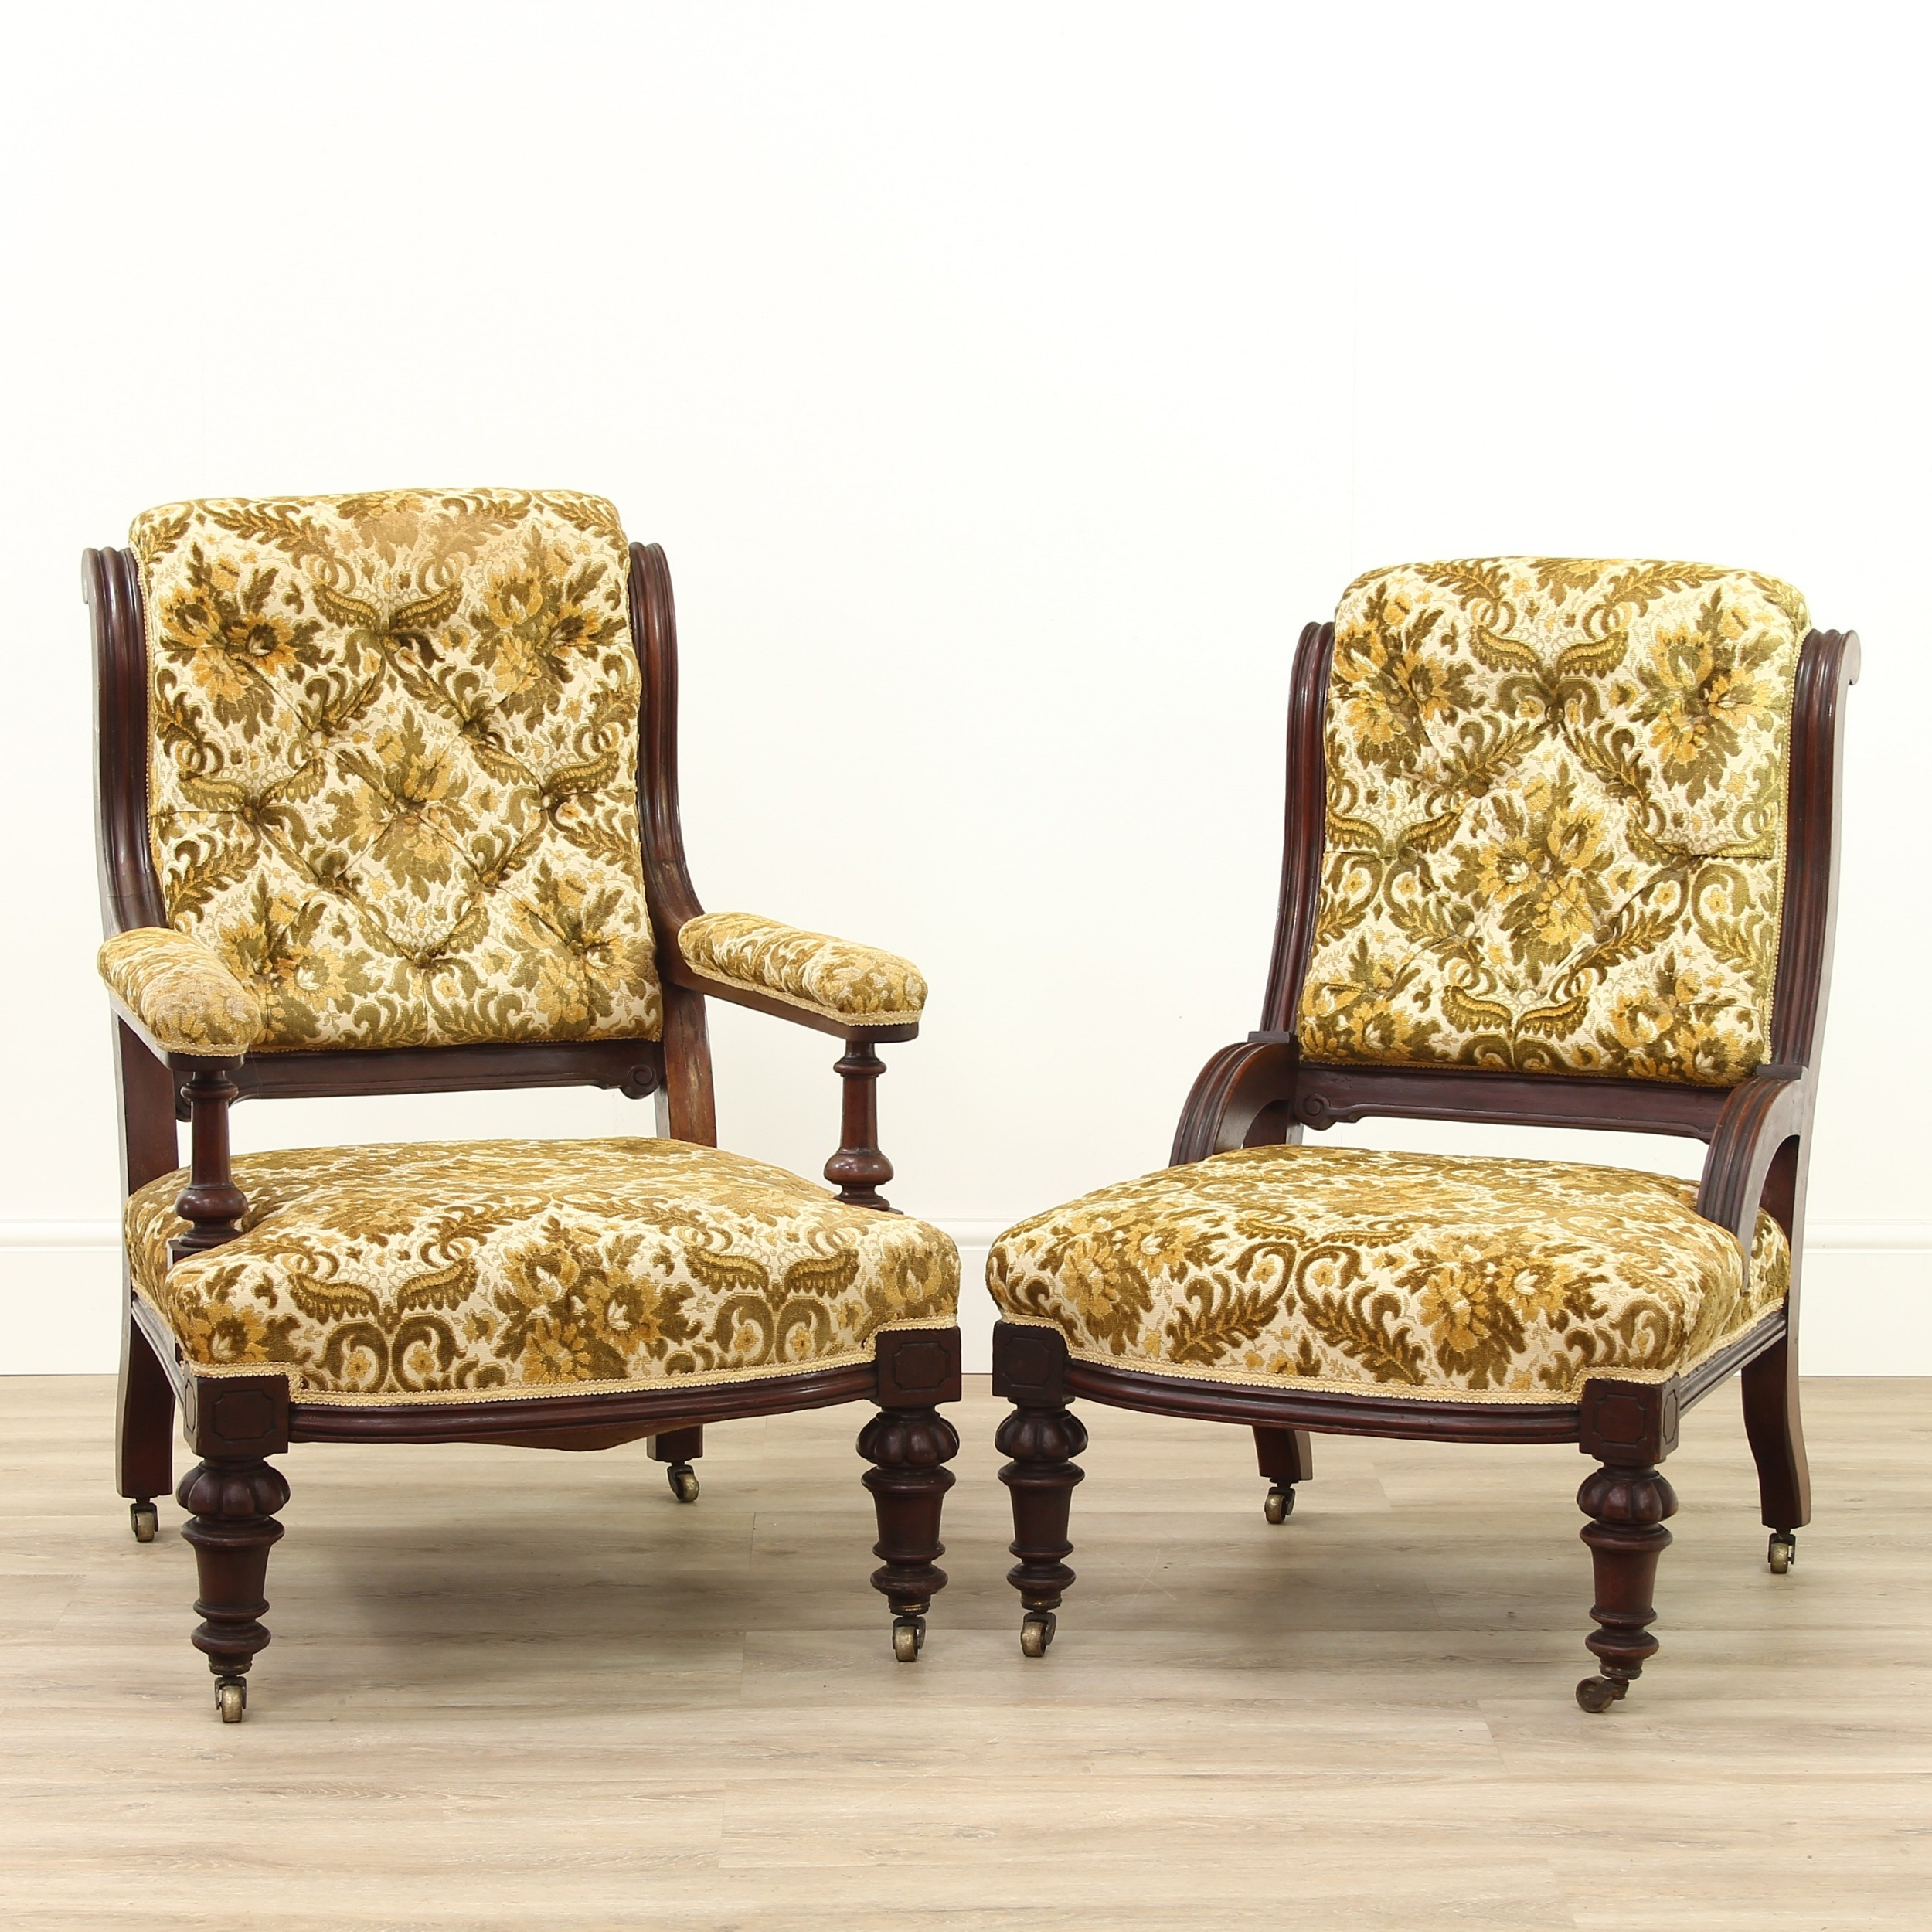 a pair of victorian gentleman's ladies upholstered chairs